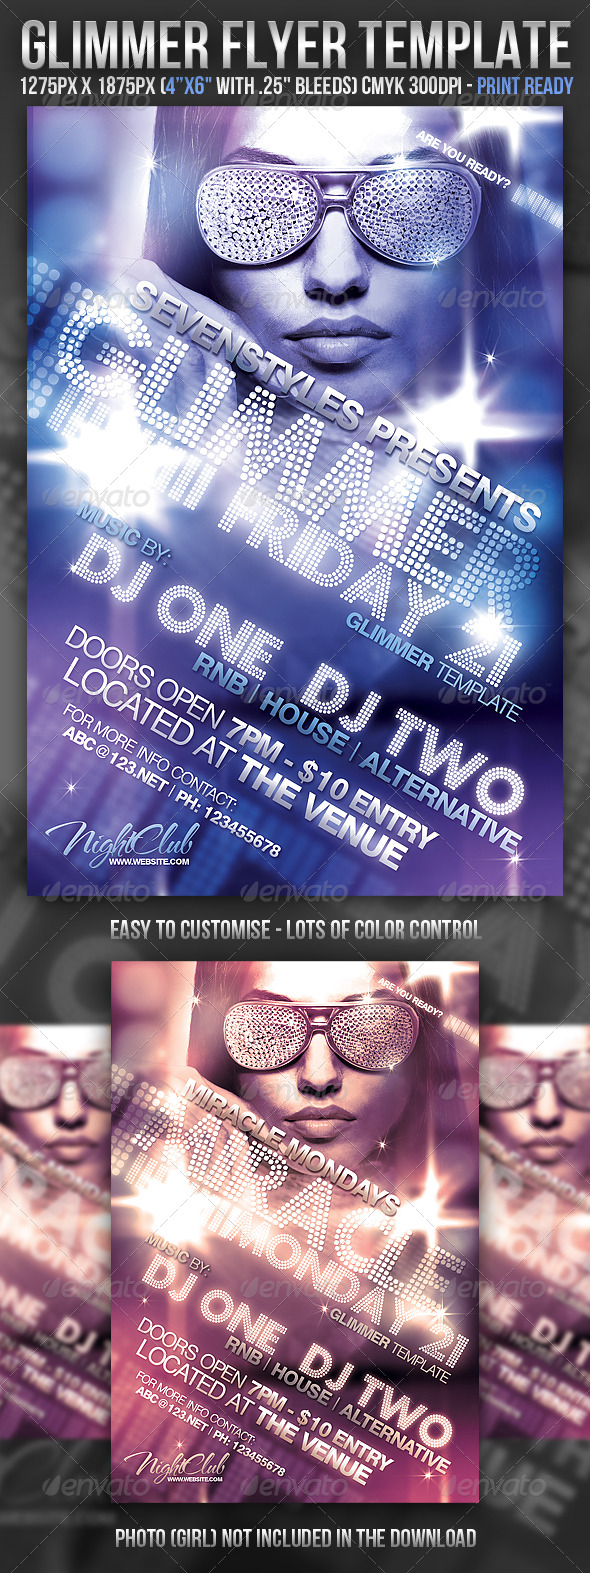 Glimmer Flyer Template - Clubs & Parties Events